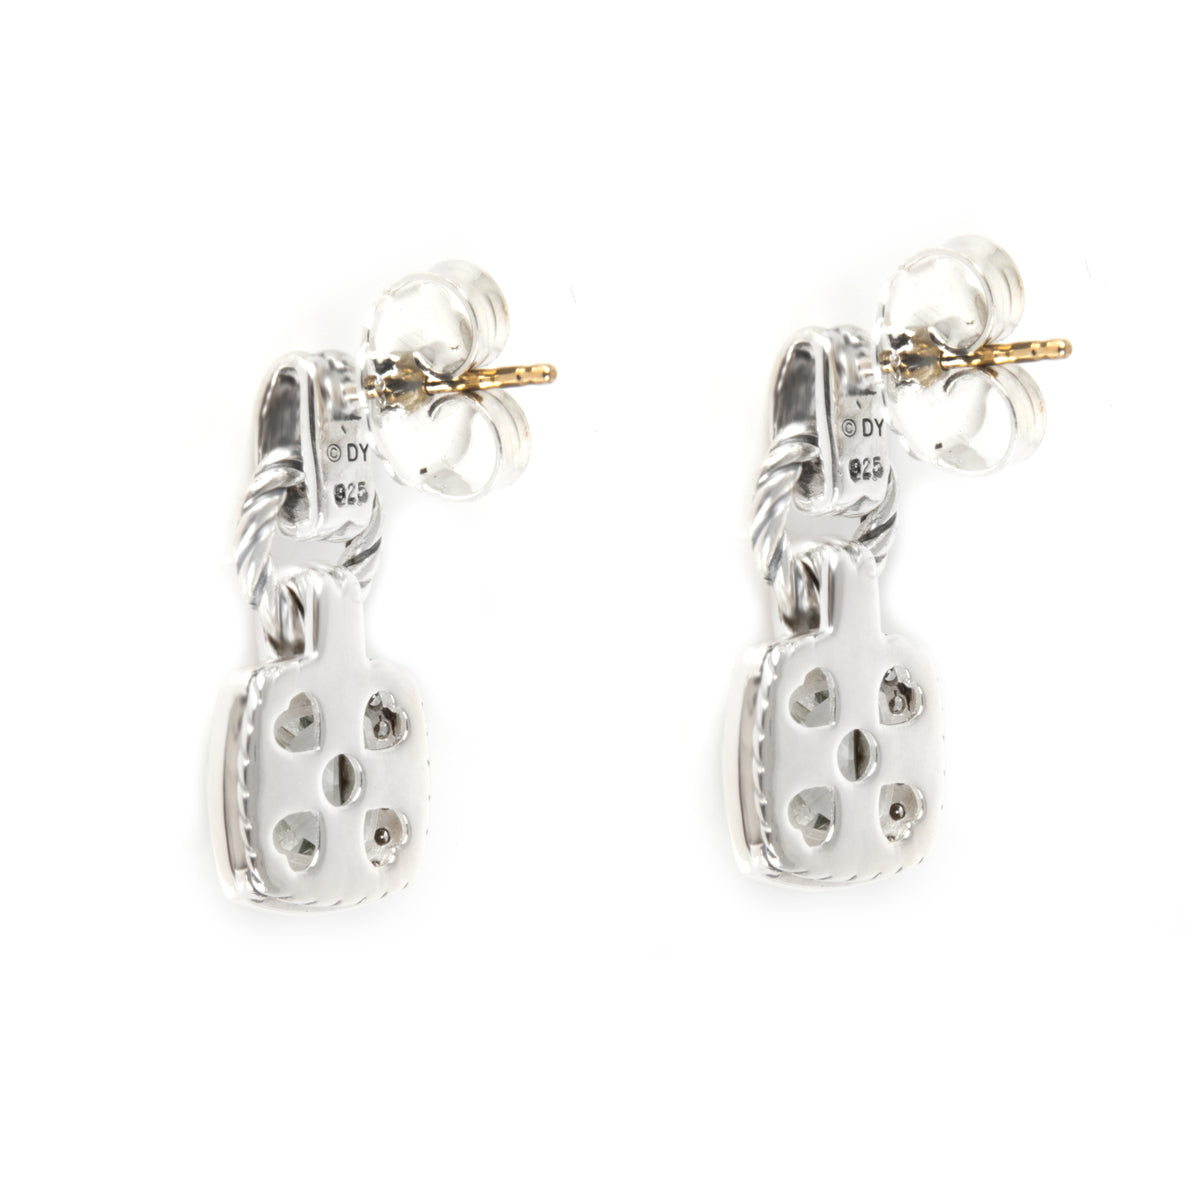 David Yurman Renaissance Prasiolite Diamond Earrings in Sterling Silver